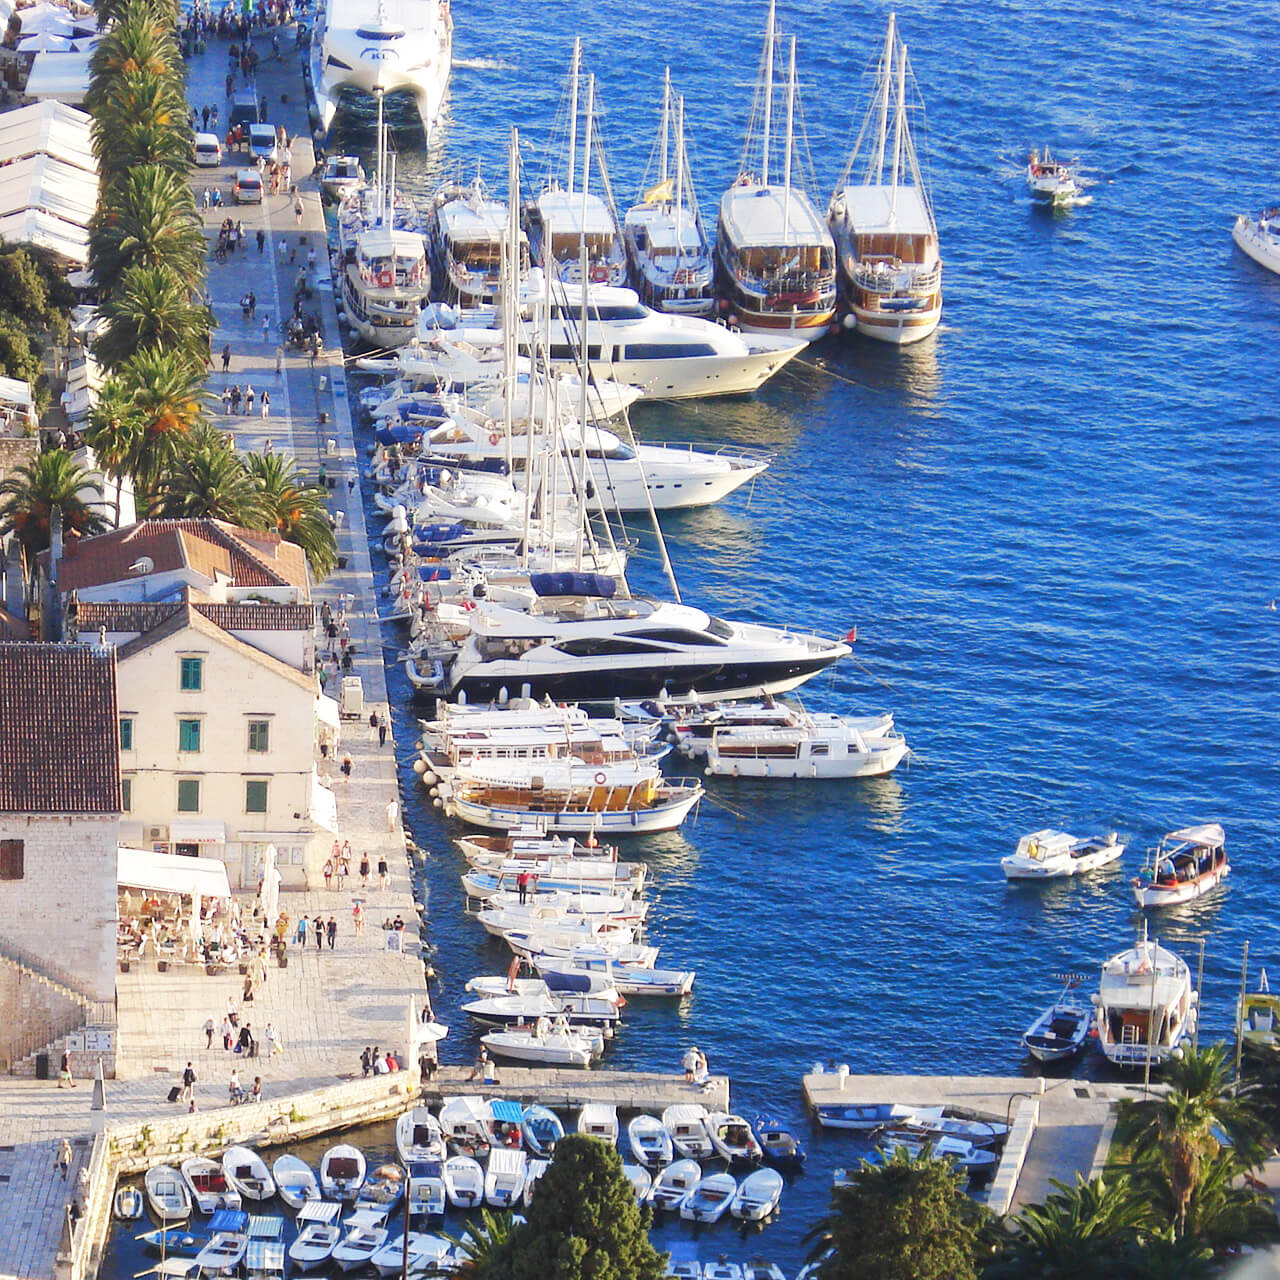 """Do It Like The Locals - Grab an espresso, relax and people watch just like the locals from one of the many cafes and restaurants on the Hvar waterfront, or """"riva""""."""